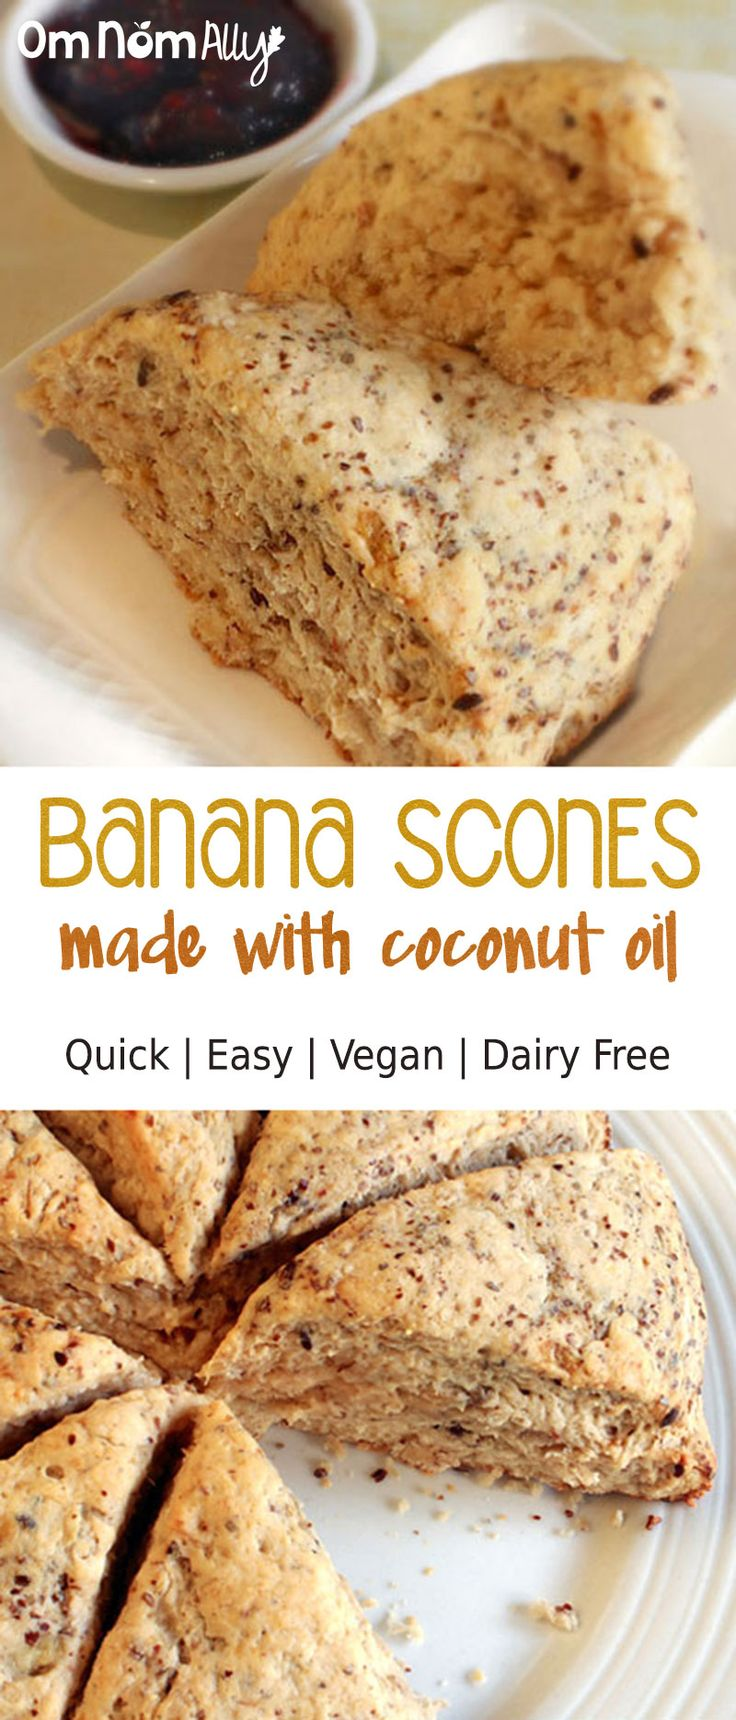 Quick & Easy Vegan Banana Scones @OmNomAlly | Made with coconut oil and coconut sugar, these Vegan Banana Scones are flaky and cakey for the most delicious brunch ever.